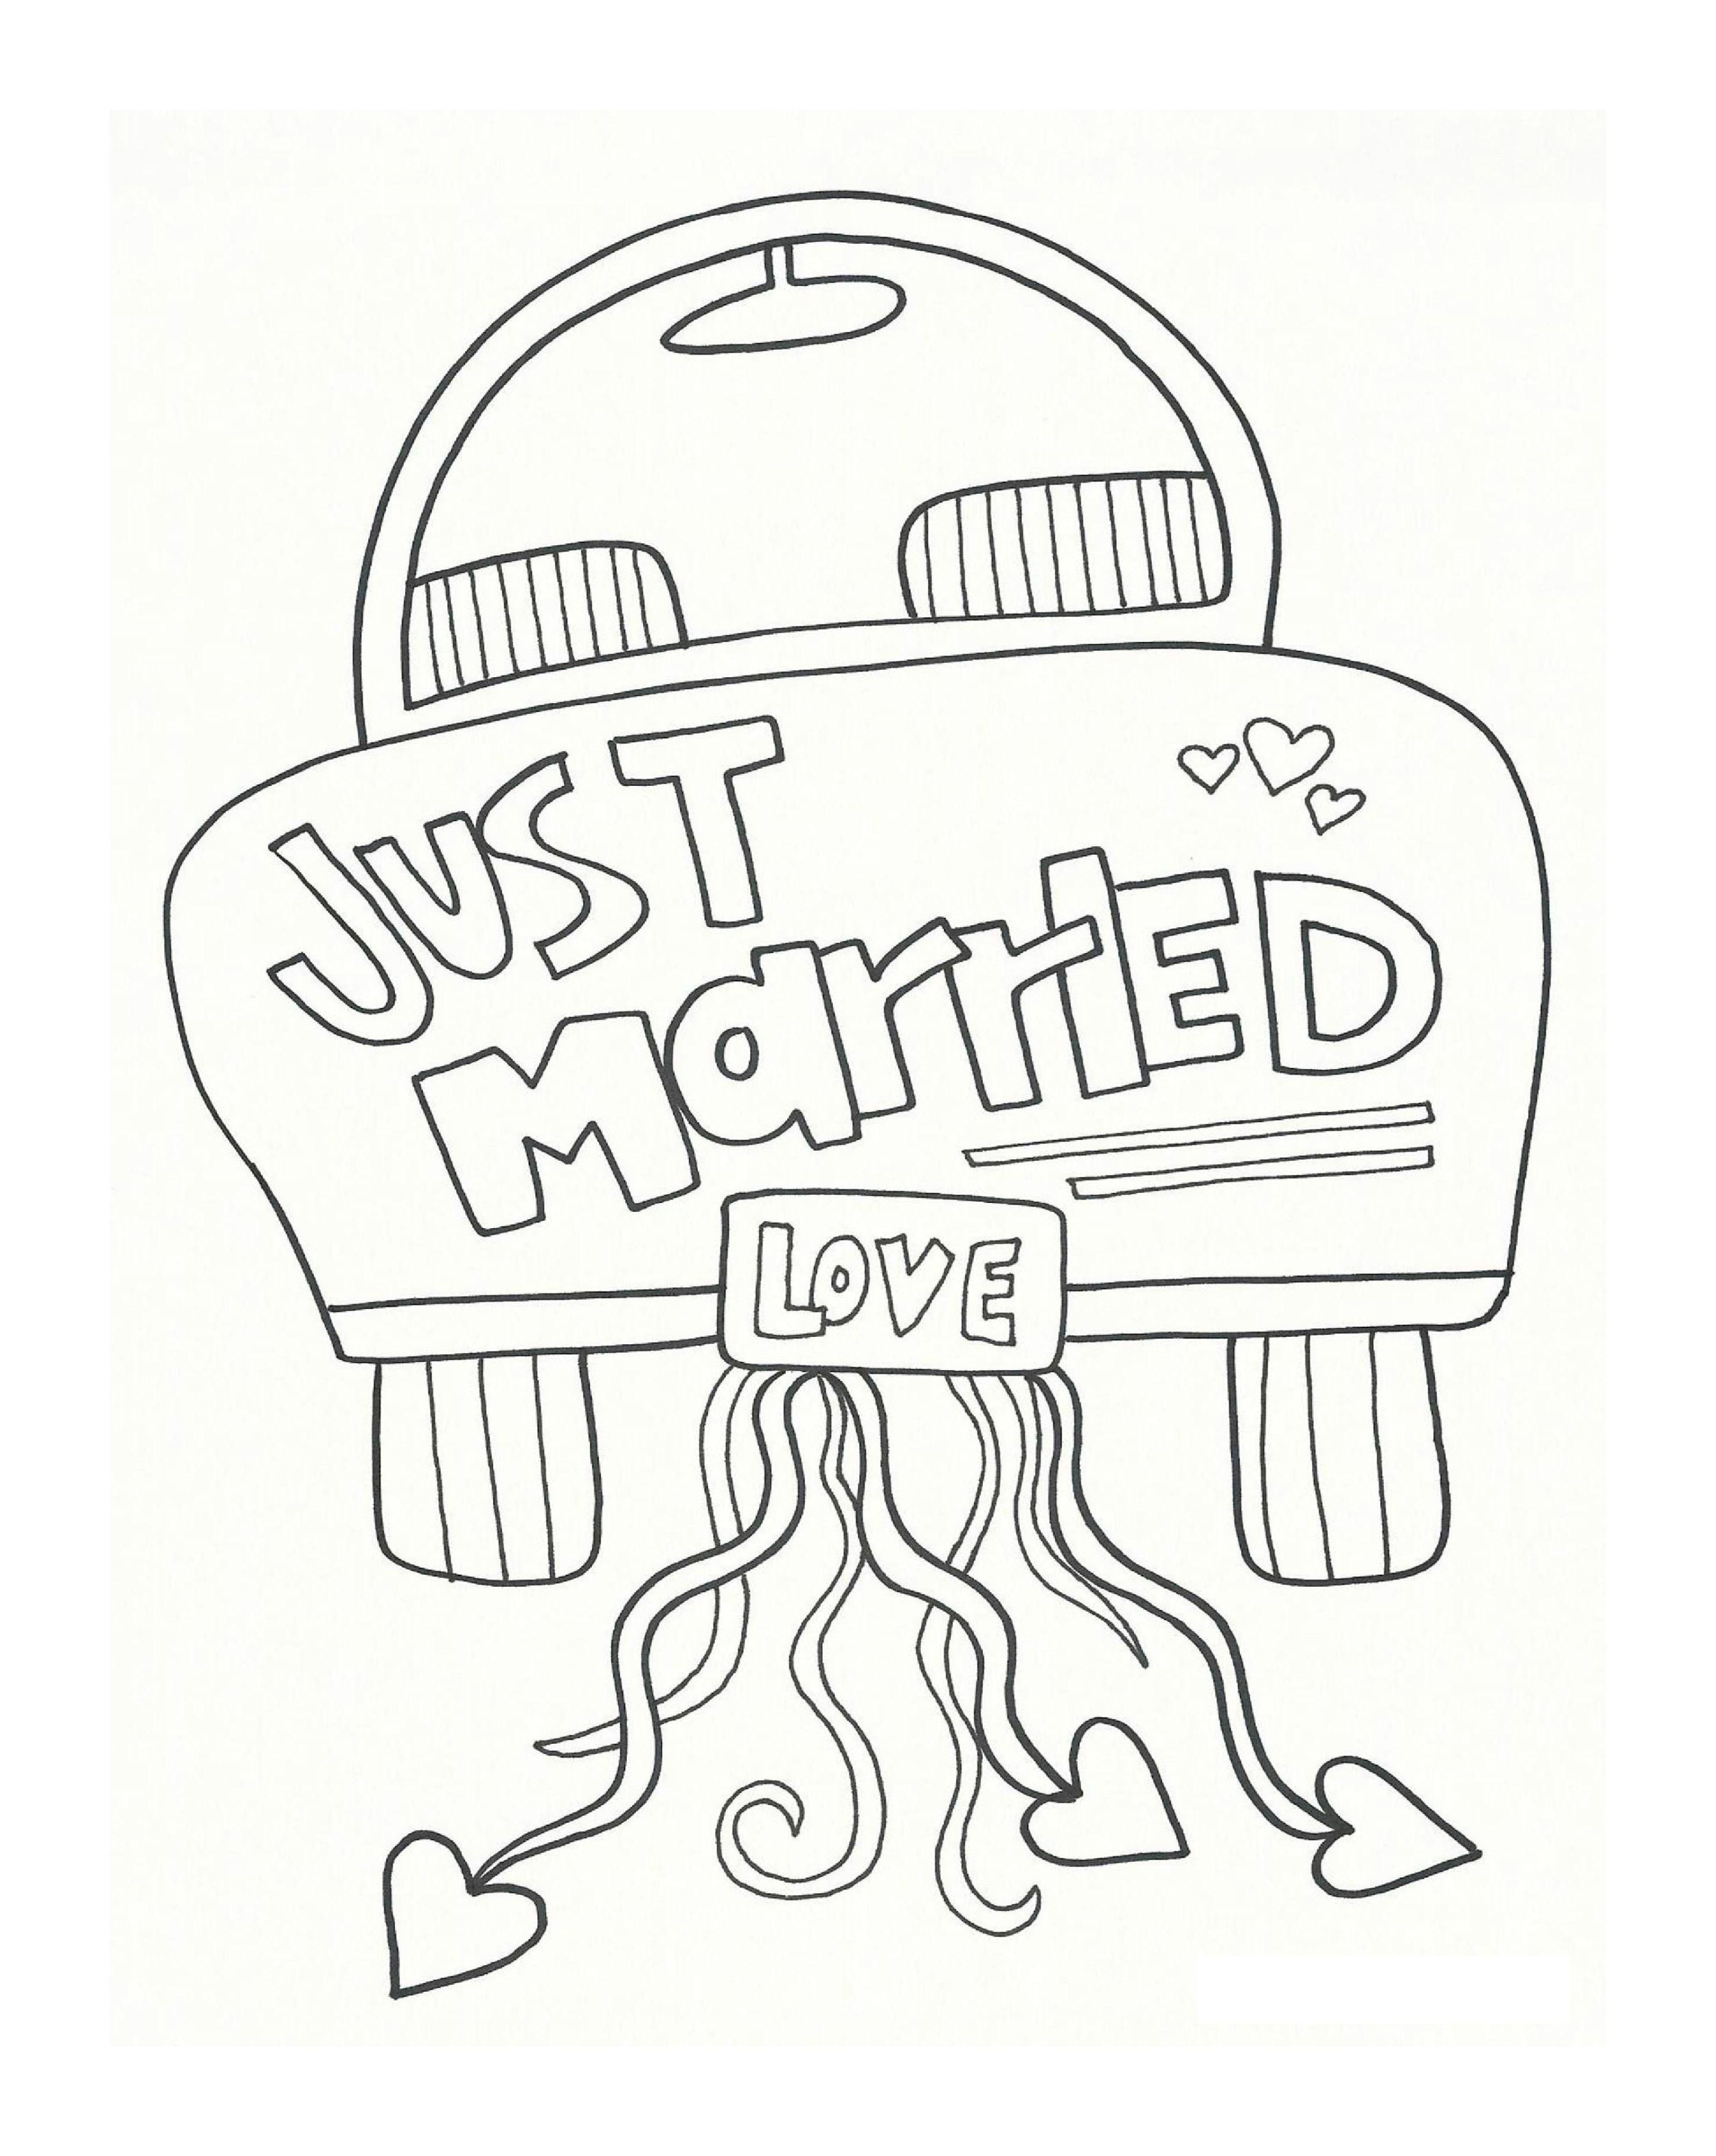 Printable Coloring Pages For Wedding In 2020 Wedding Coloring Pages Free Wedding Printables Kids Table Wedding